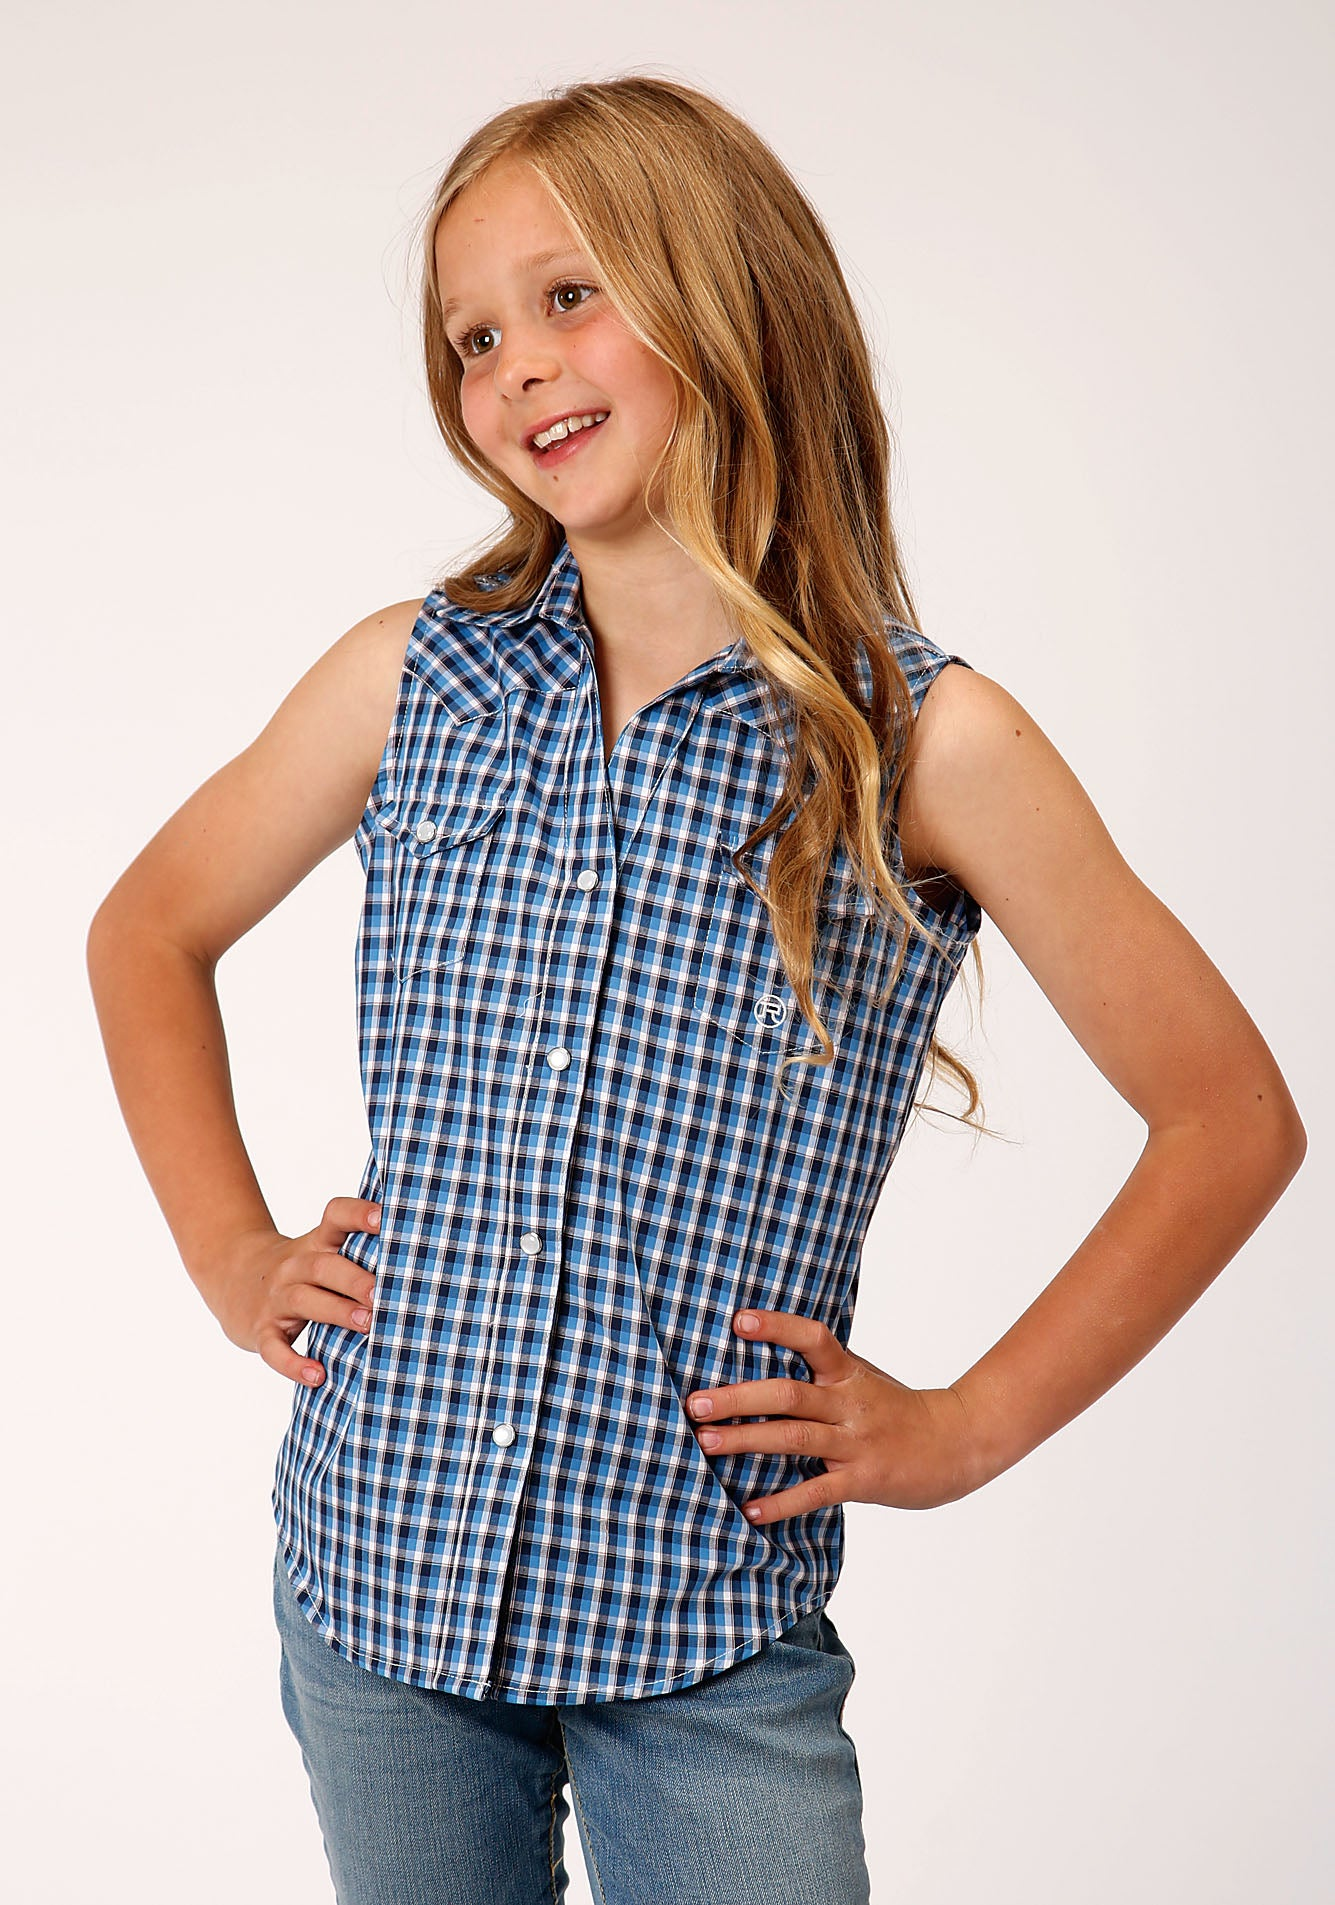 ROPER GIRLS BLUE 00021 AMERICANA CHECK GIRLS AMARILLO COLLECTION- HERITAGE SLEEVELESS